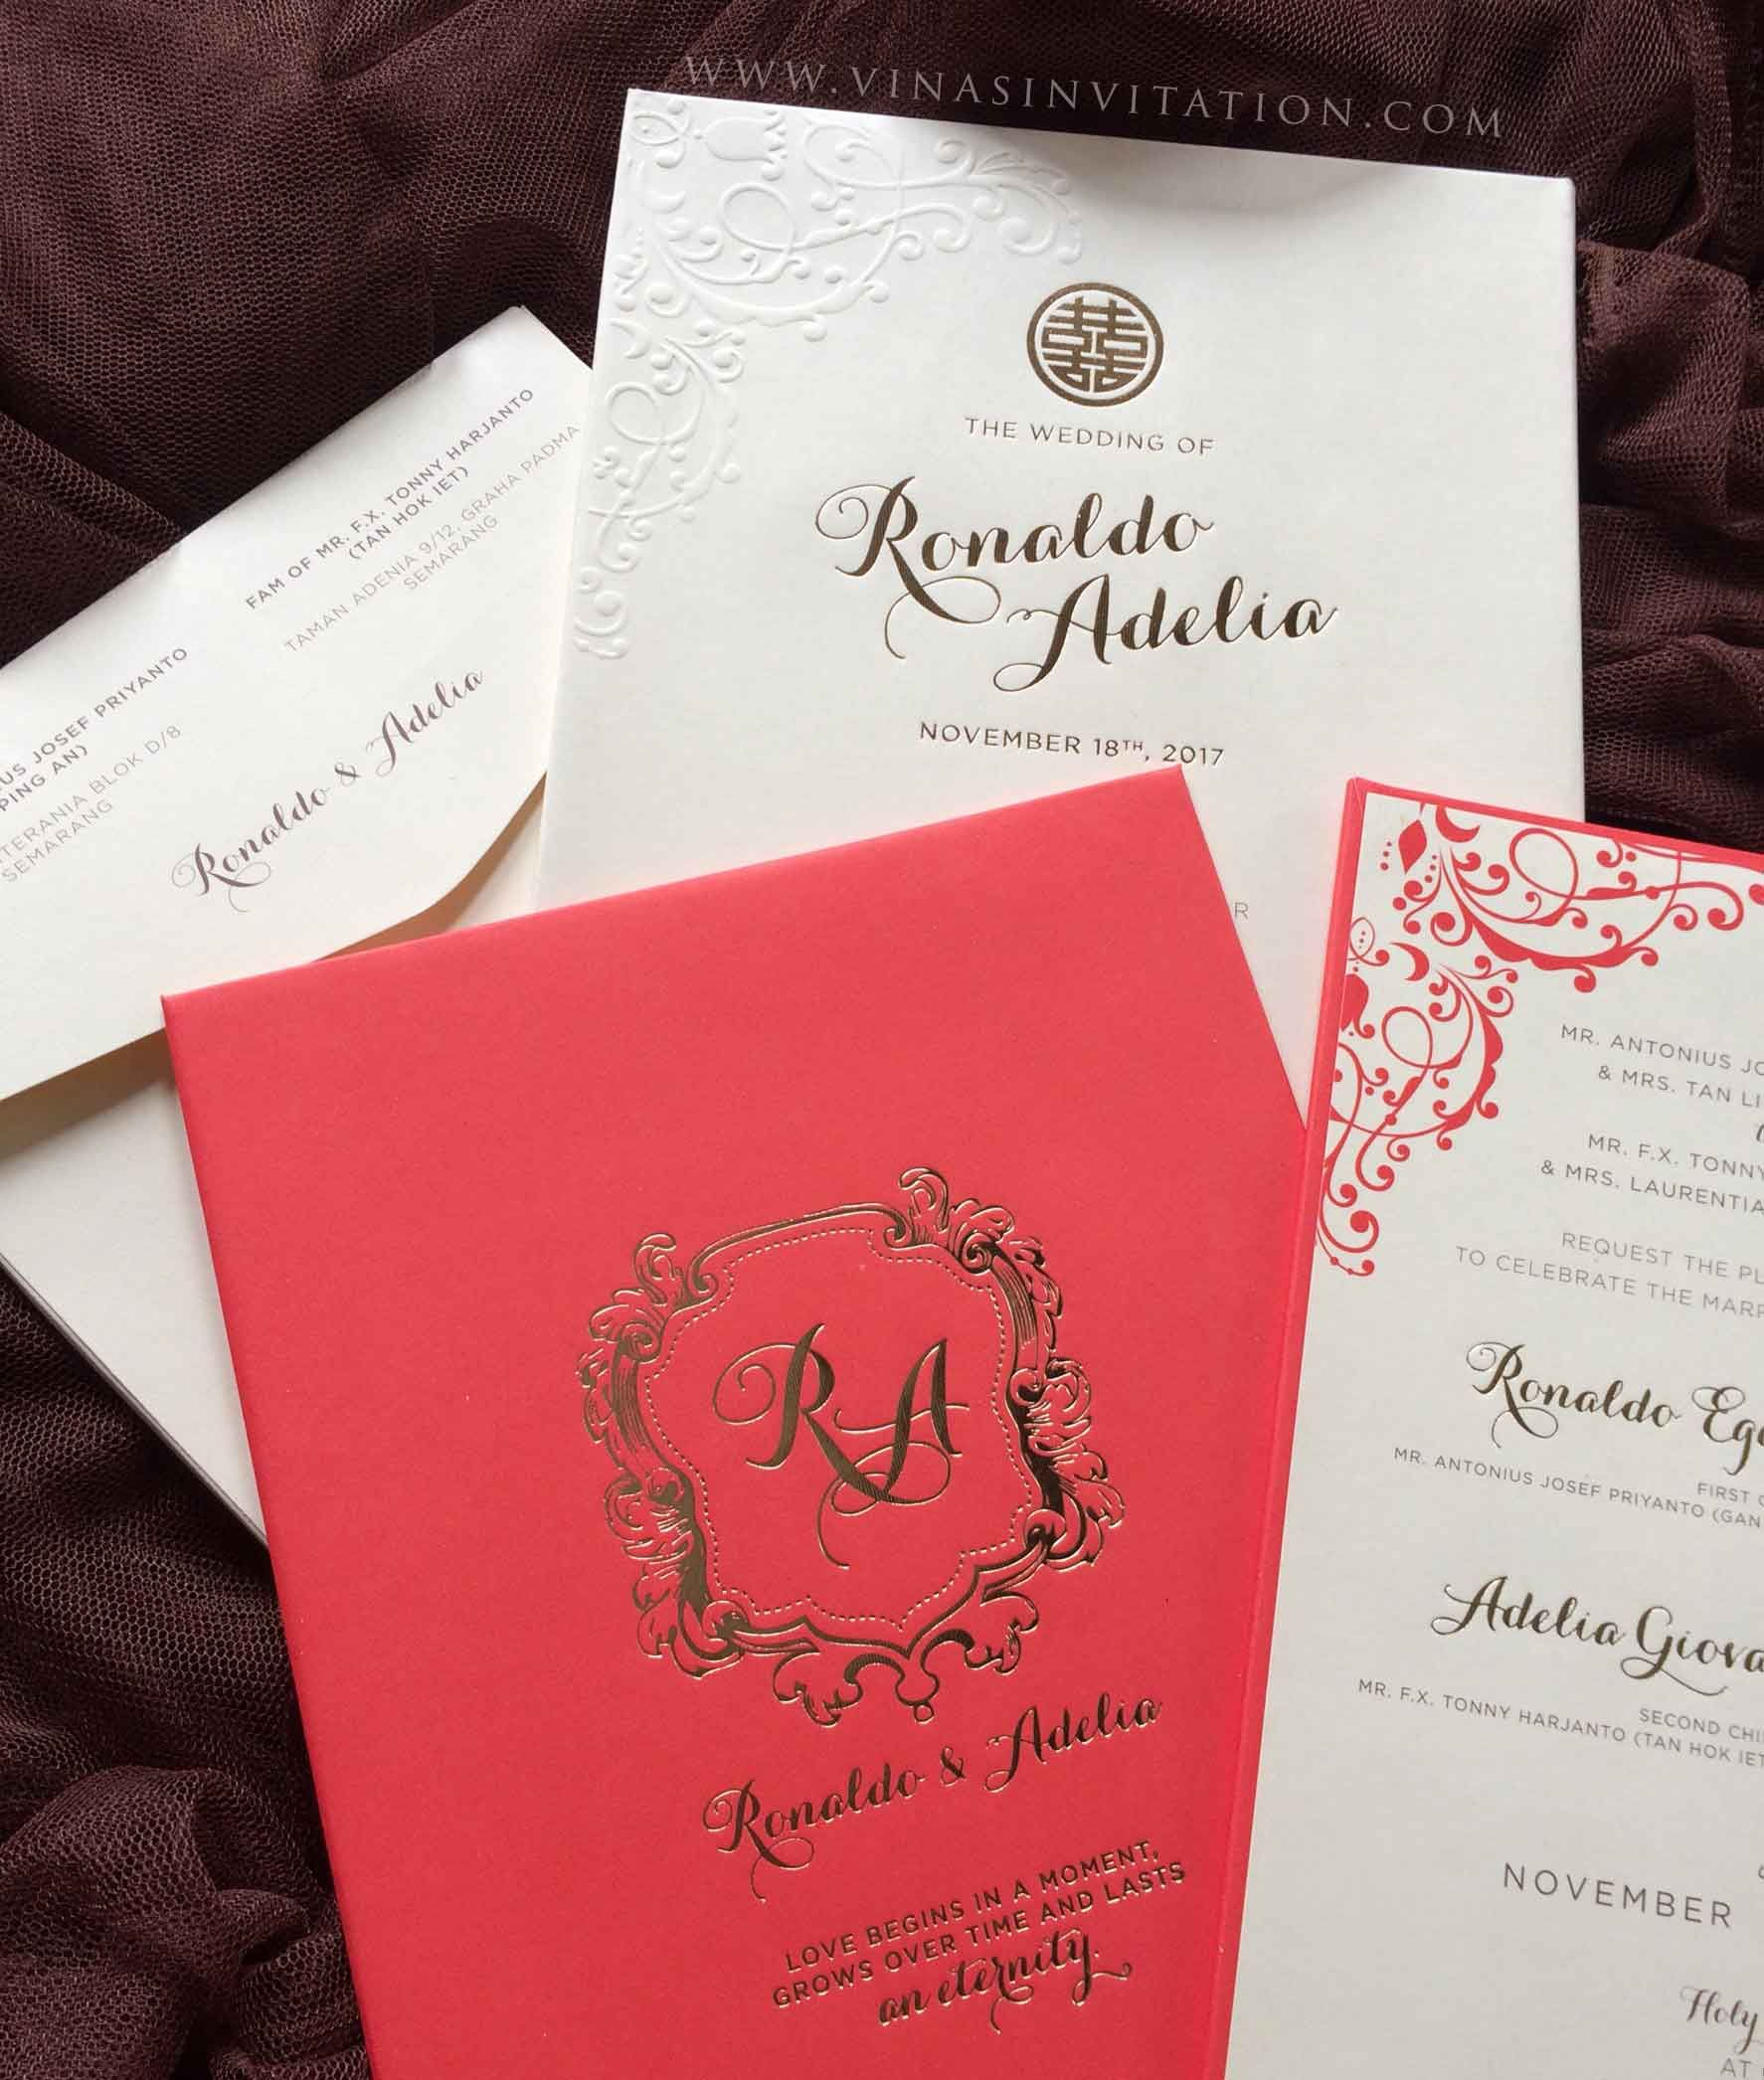 how to address wedding invites%0A vinas invitation  wedding invitation semarang  wedding invitation sydney  wedding  invitation surabaya  custom